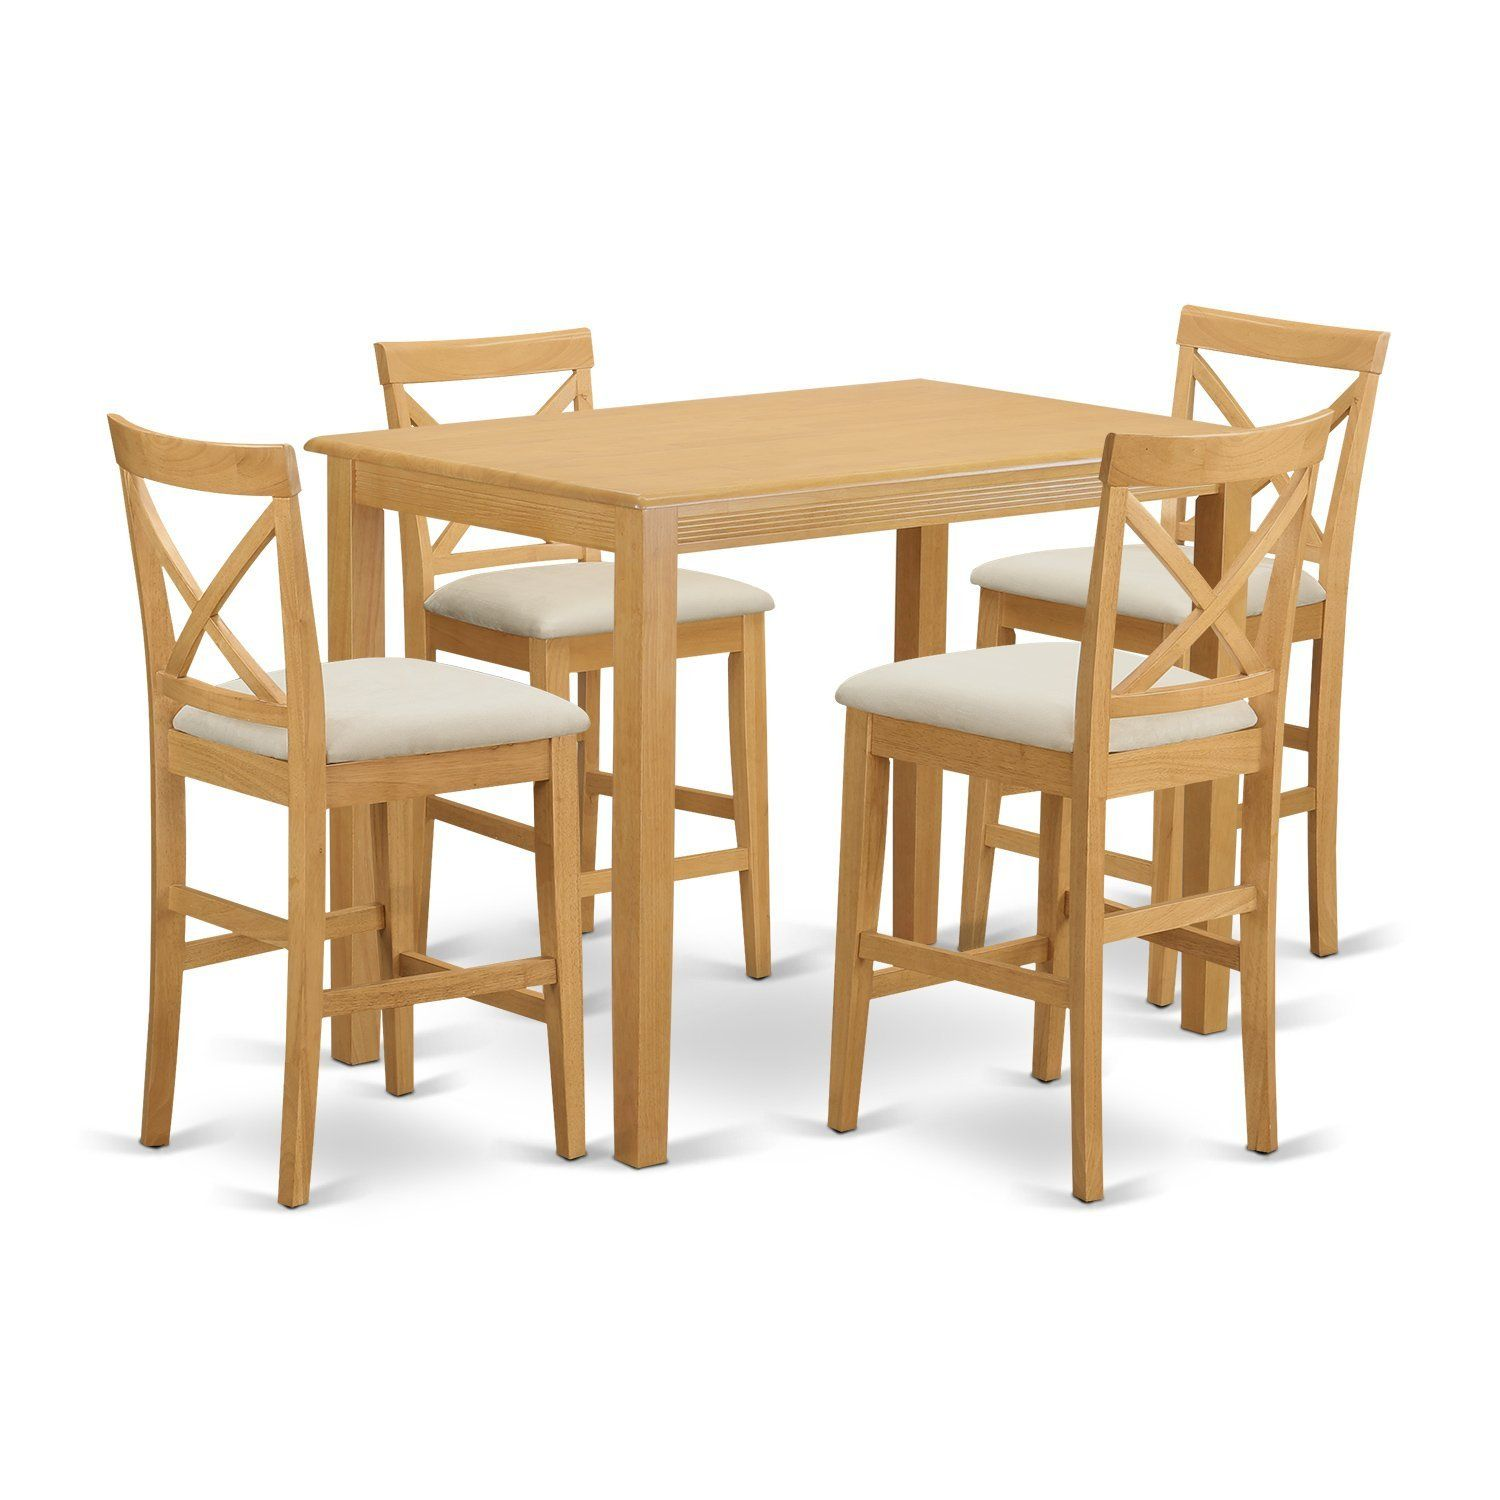 East West Furniture YAPB5-OAK-C 5 Piece High Top Table and 4 Chairs ...